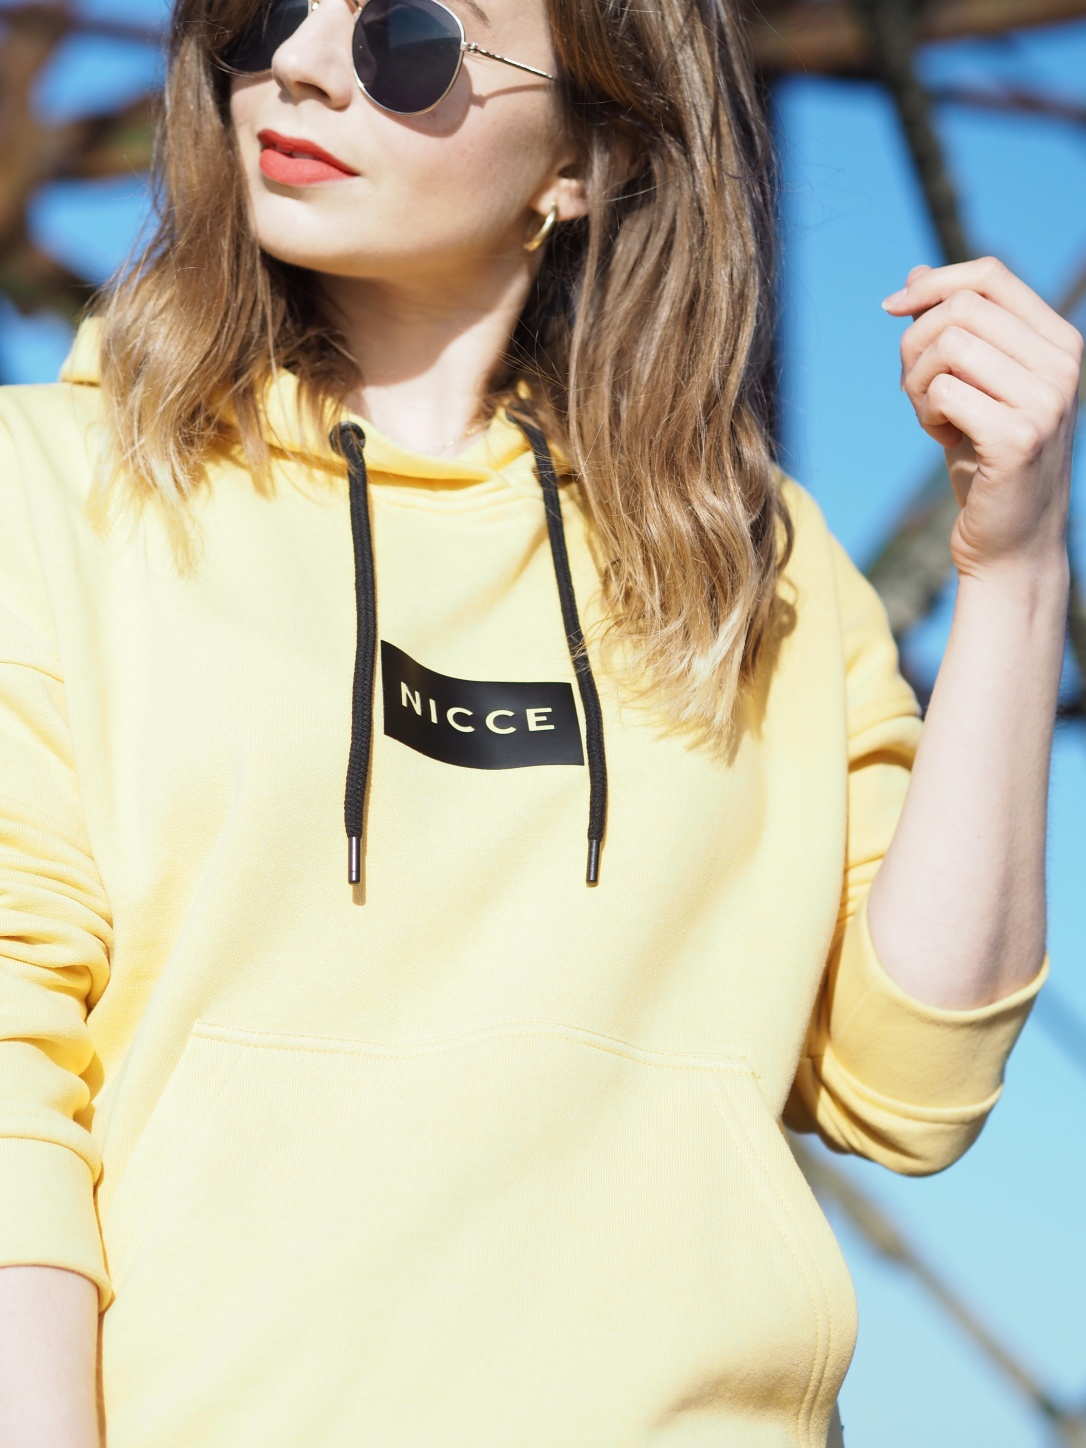 Nicce hoody beach outfit